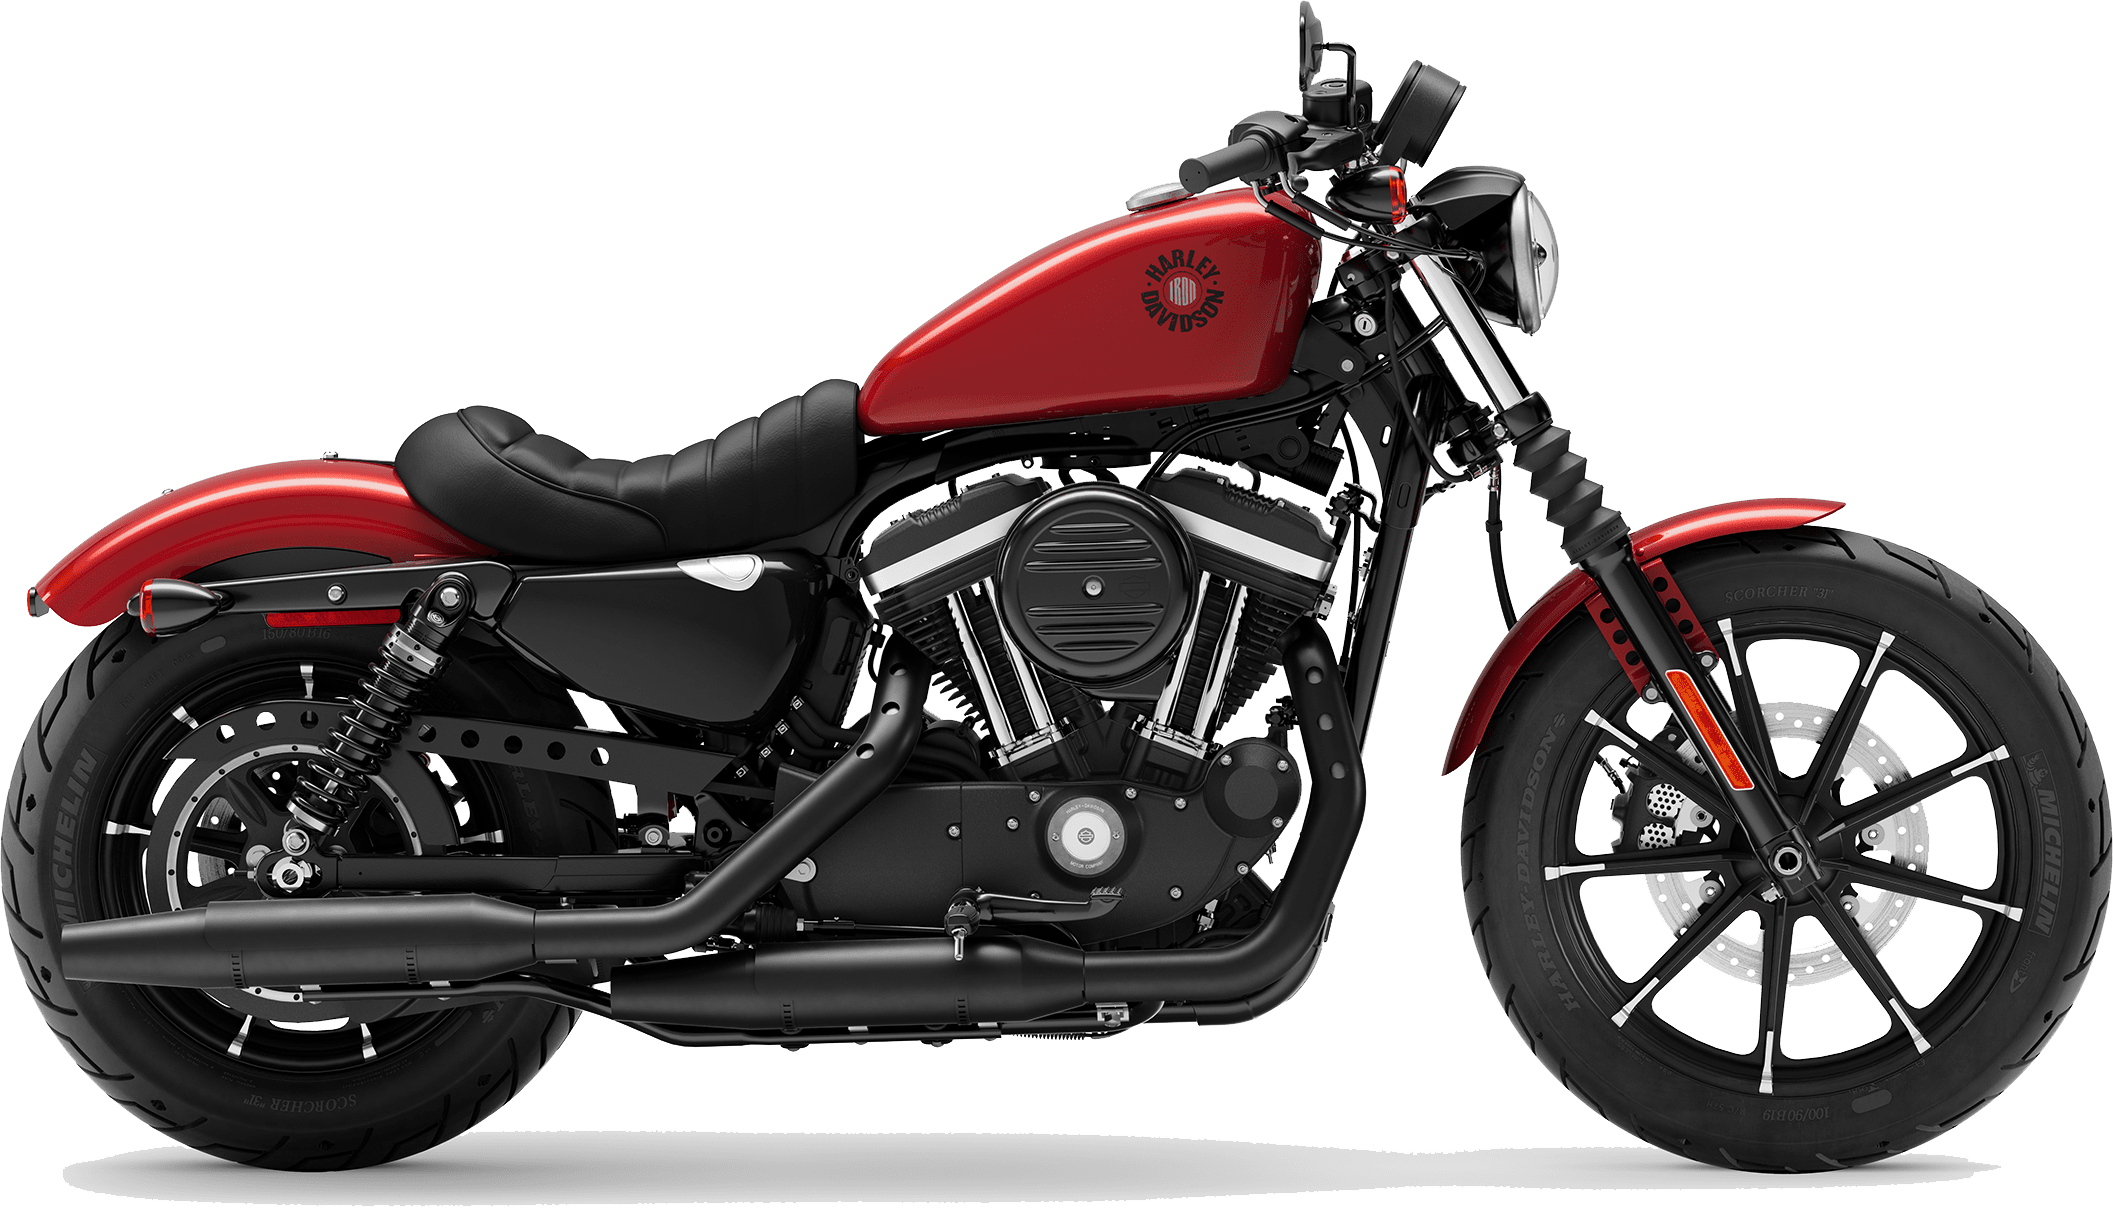 2019 Harley-Davidson H-D Sportster Iron 883 Wicked Red